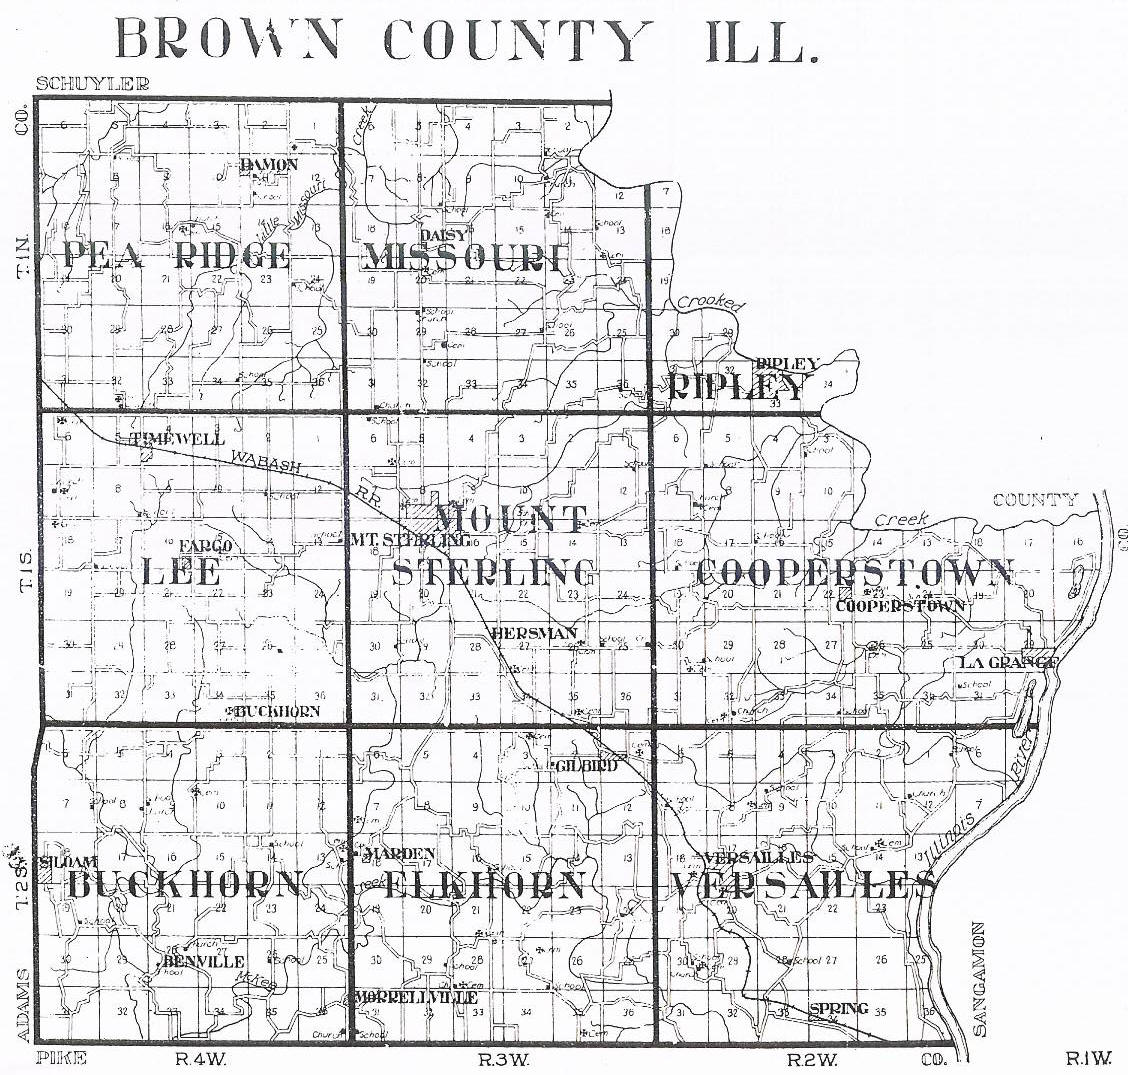 Illinois brown county versailles - Brown Co Il Township Map For Brown Co Il Graveyards Il Saving Graves